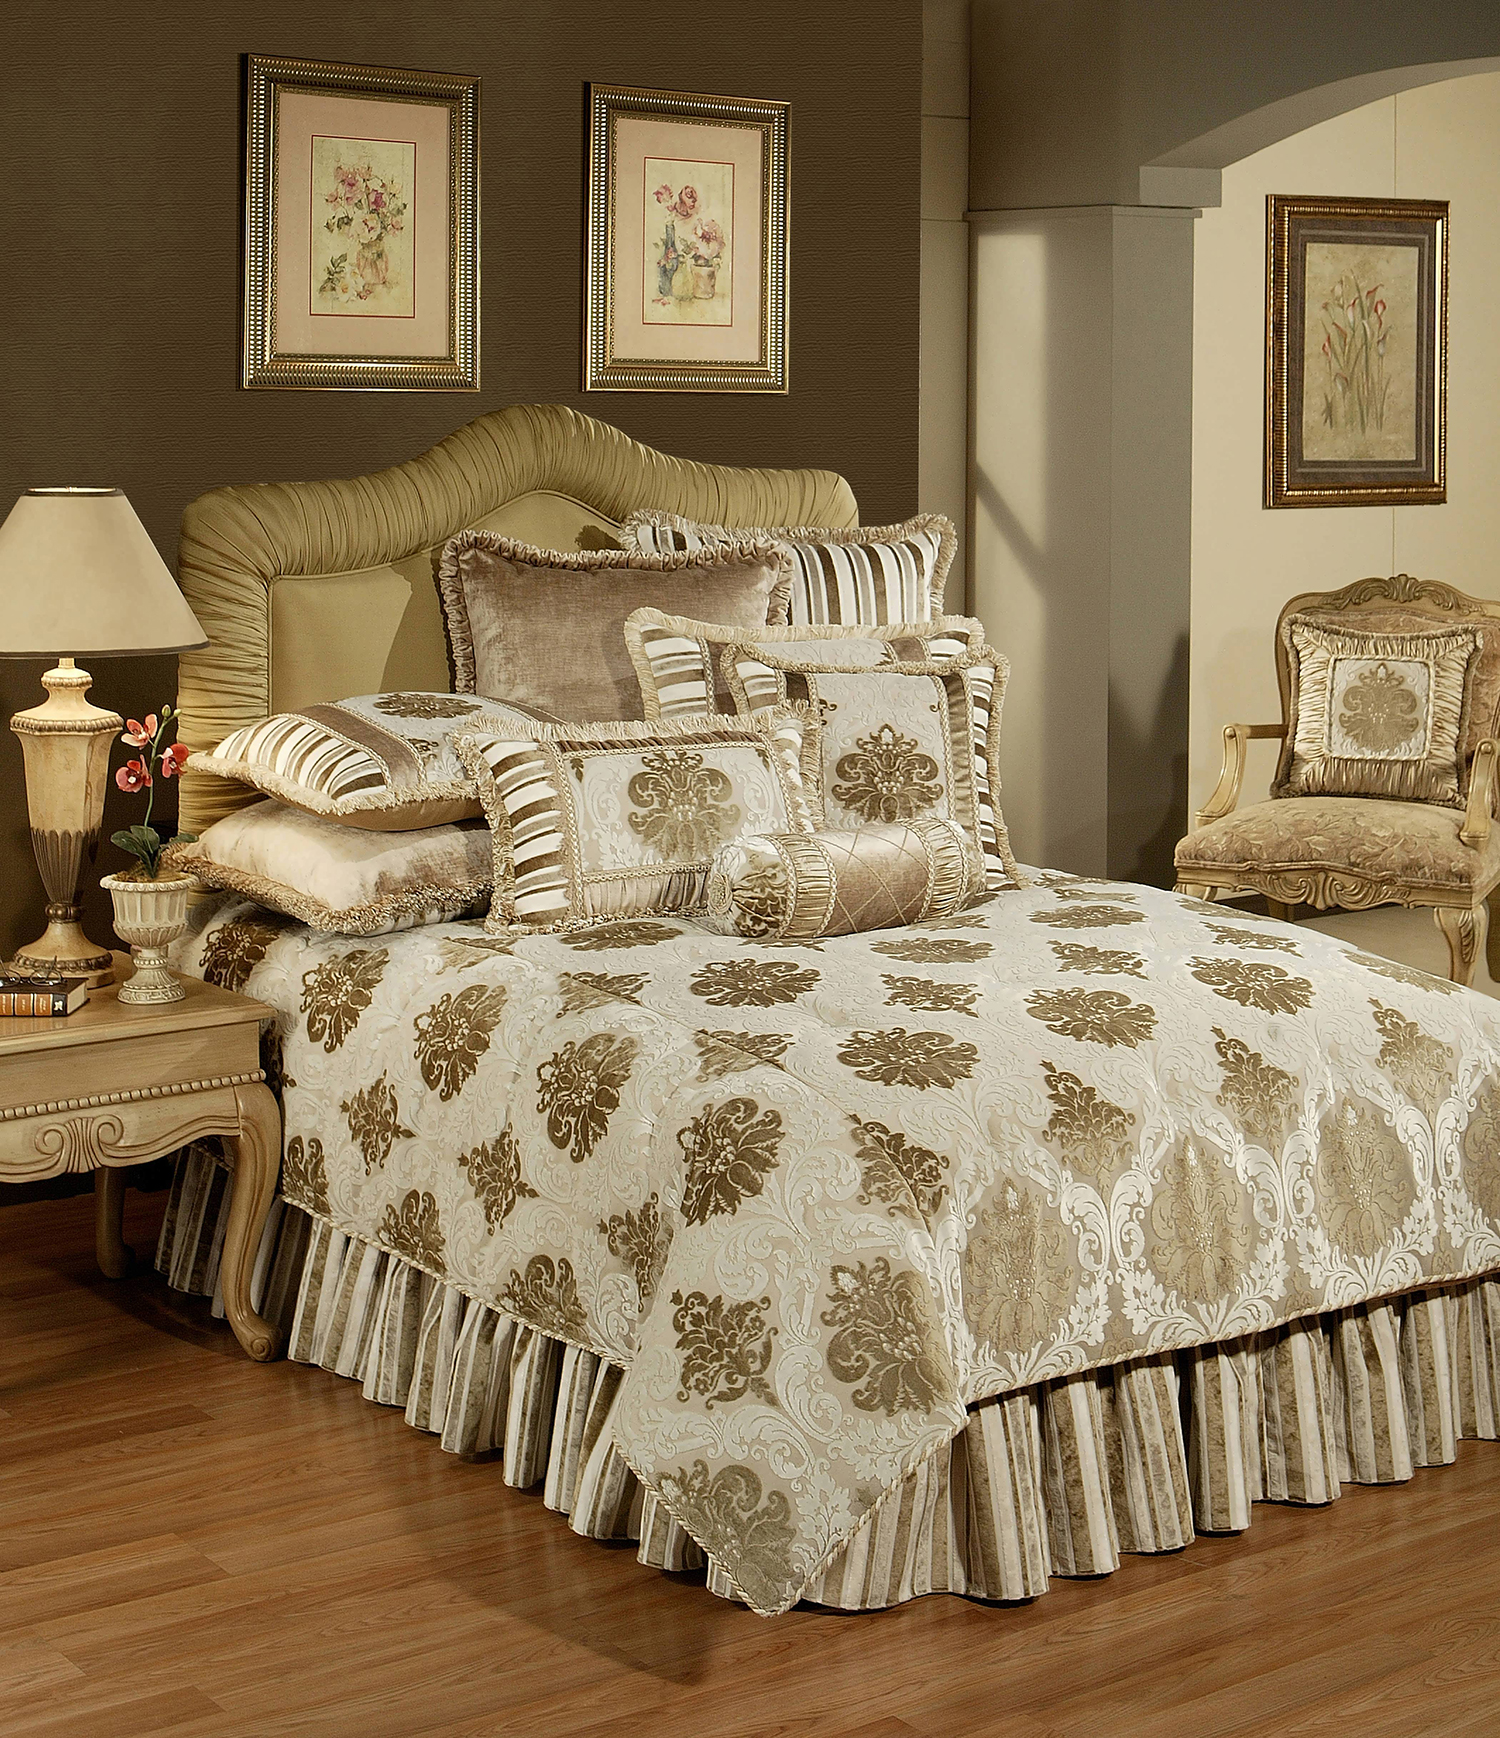 Minuet By Austin Horn Luxury Bedding Beddingsuperstore Com